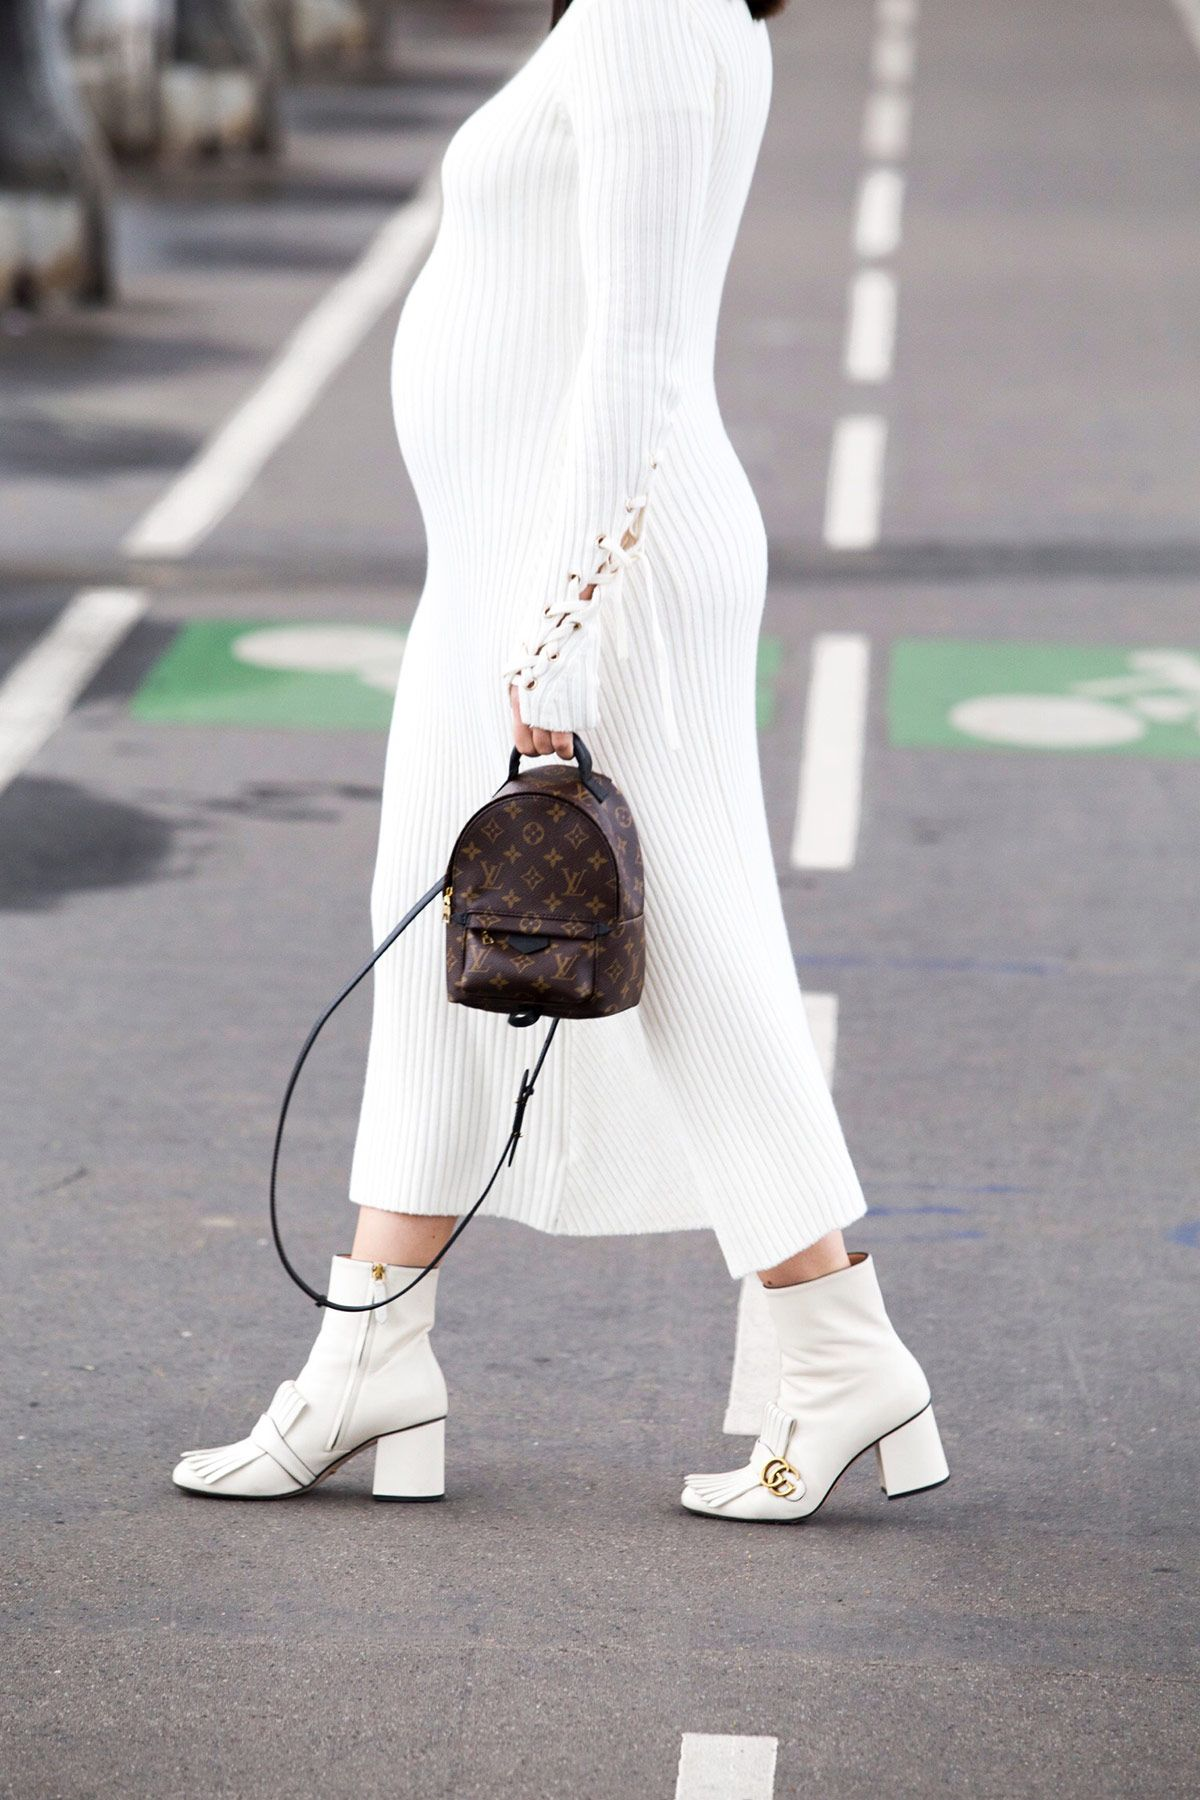 8d7efcd7775 Louis Vuitton Palm Springs backpack and Gucci Marmot boots in white - all  white look